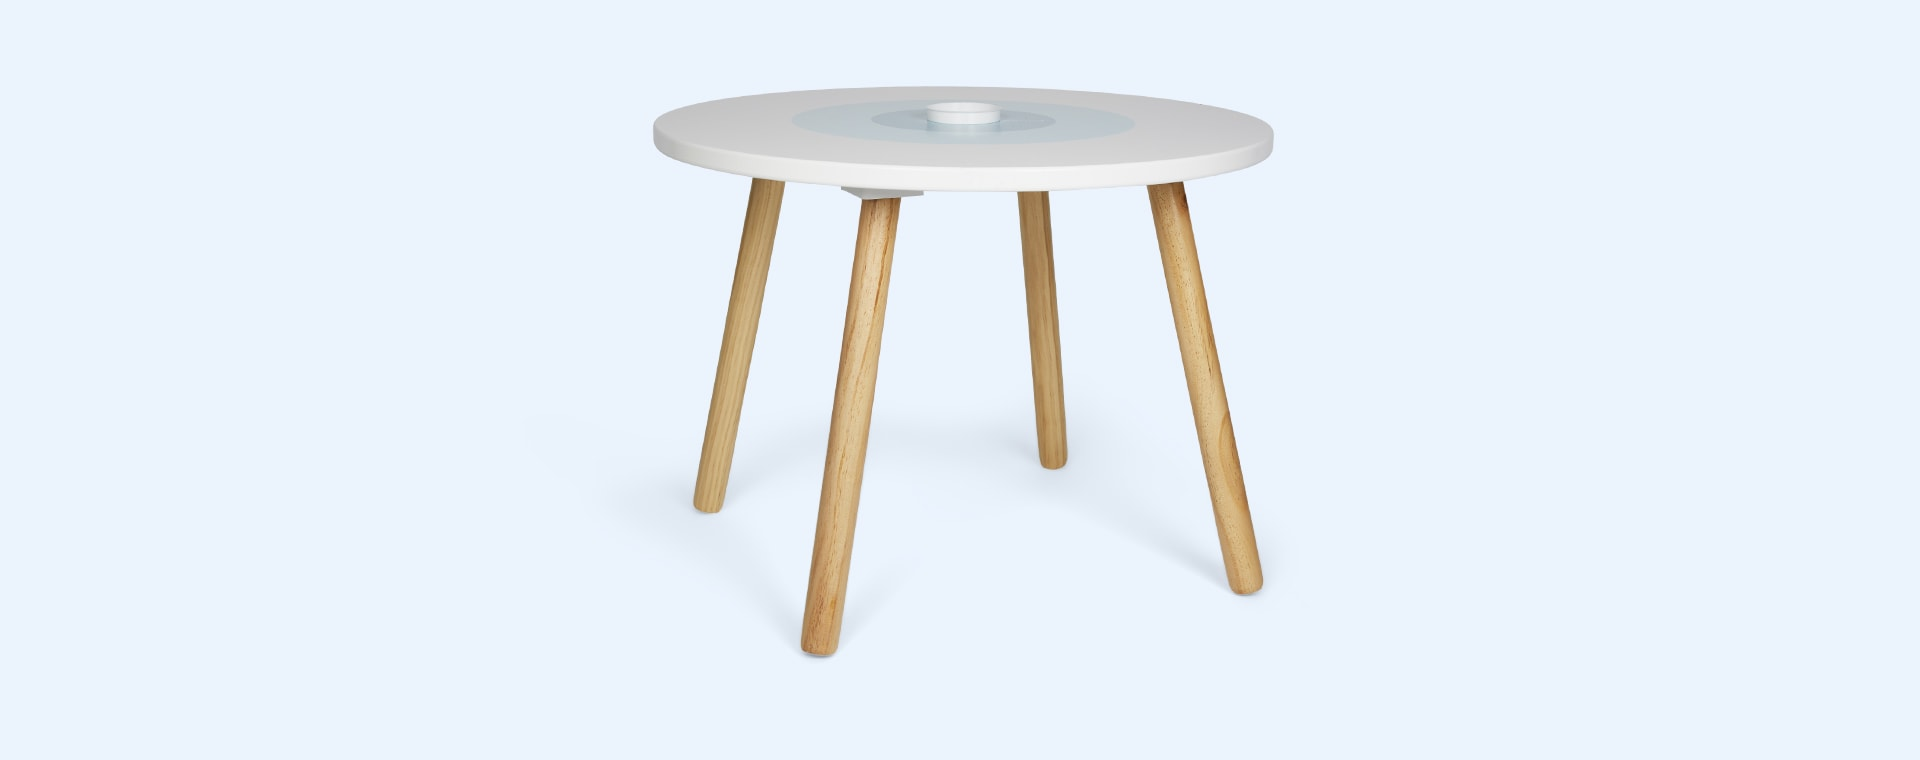 Multi Janod Table And 2 Chairs - Polar